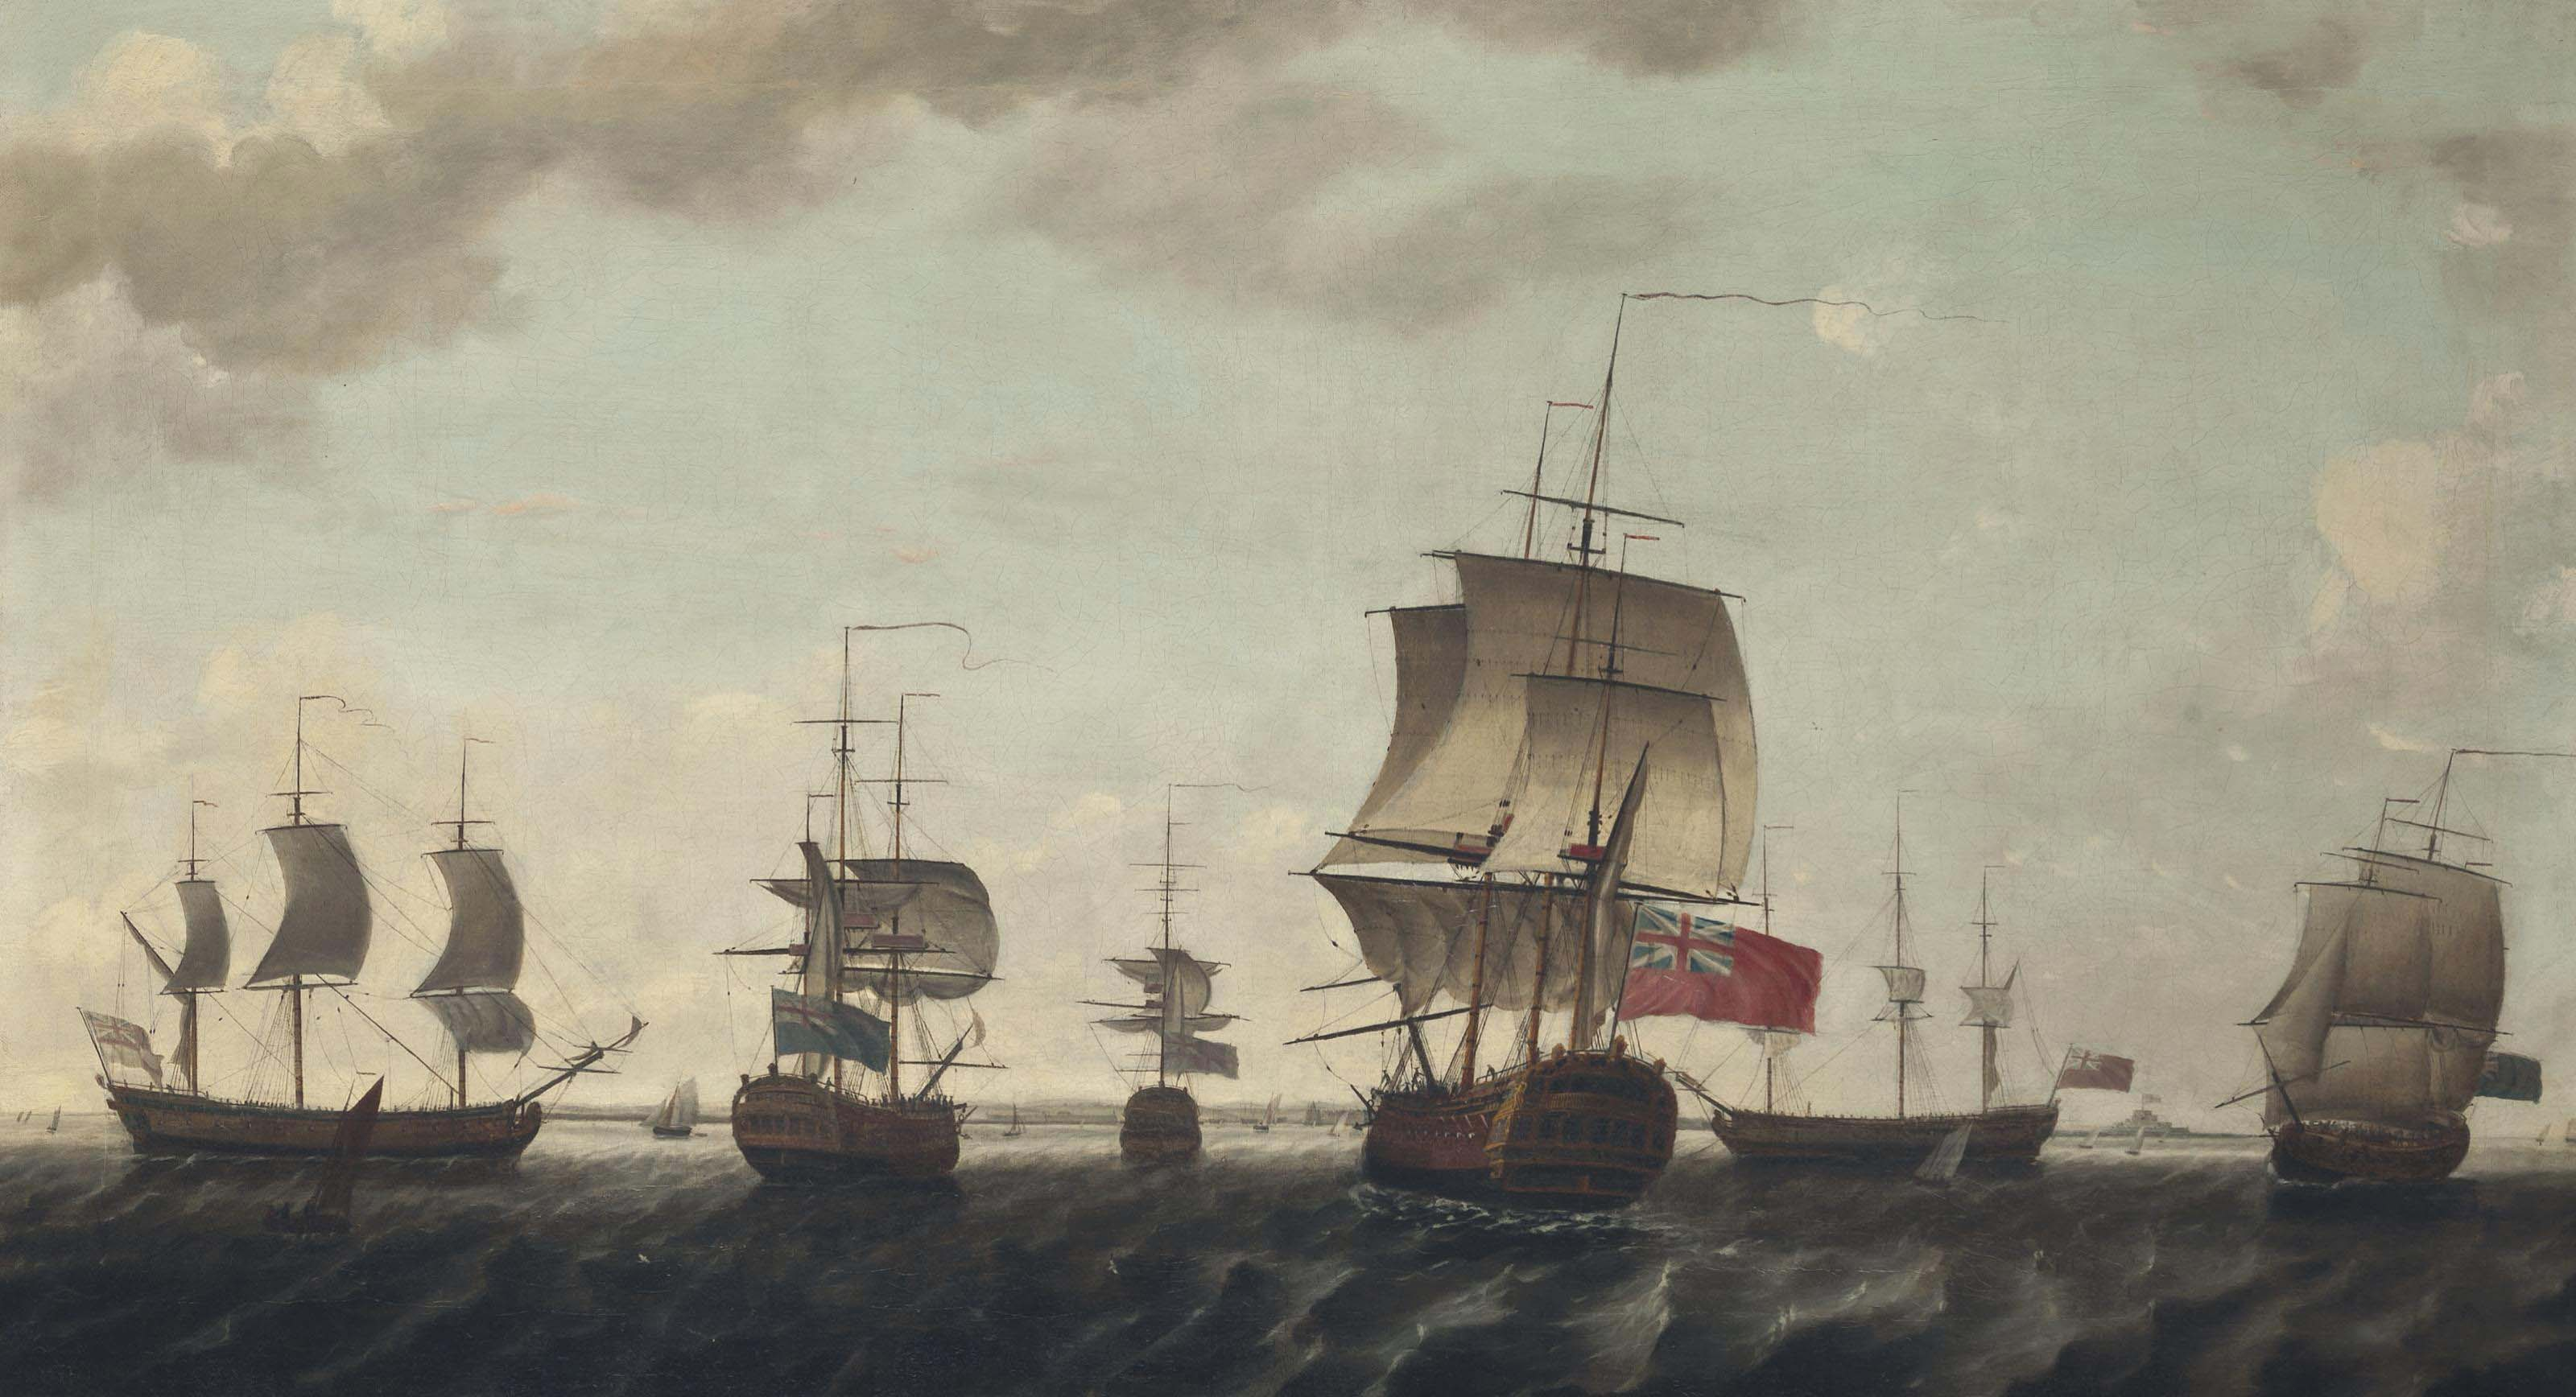 East Indiamen, including the Triton and the Egmont, and their escorts forming up into a convoy in the Channel and making ready for their journey eastwards to India and China